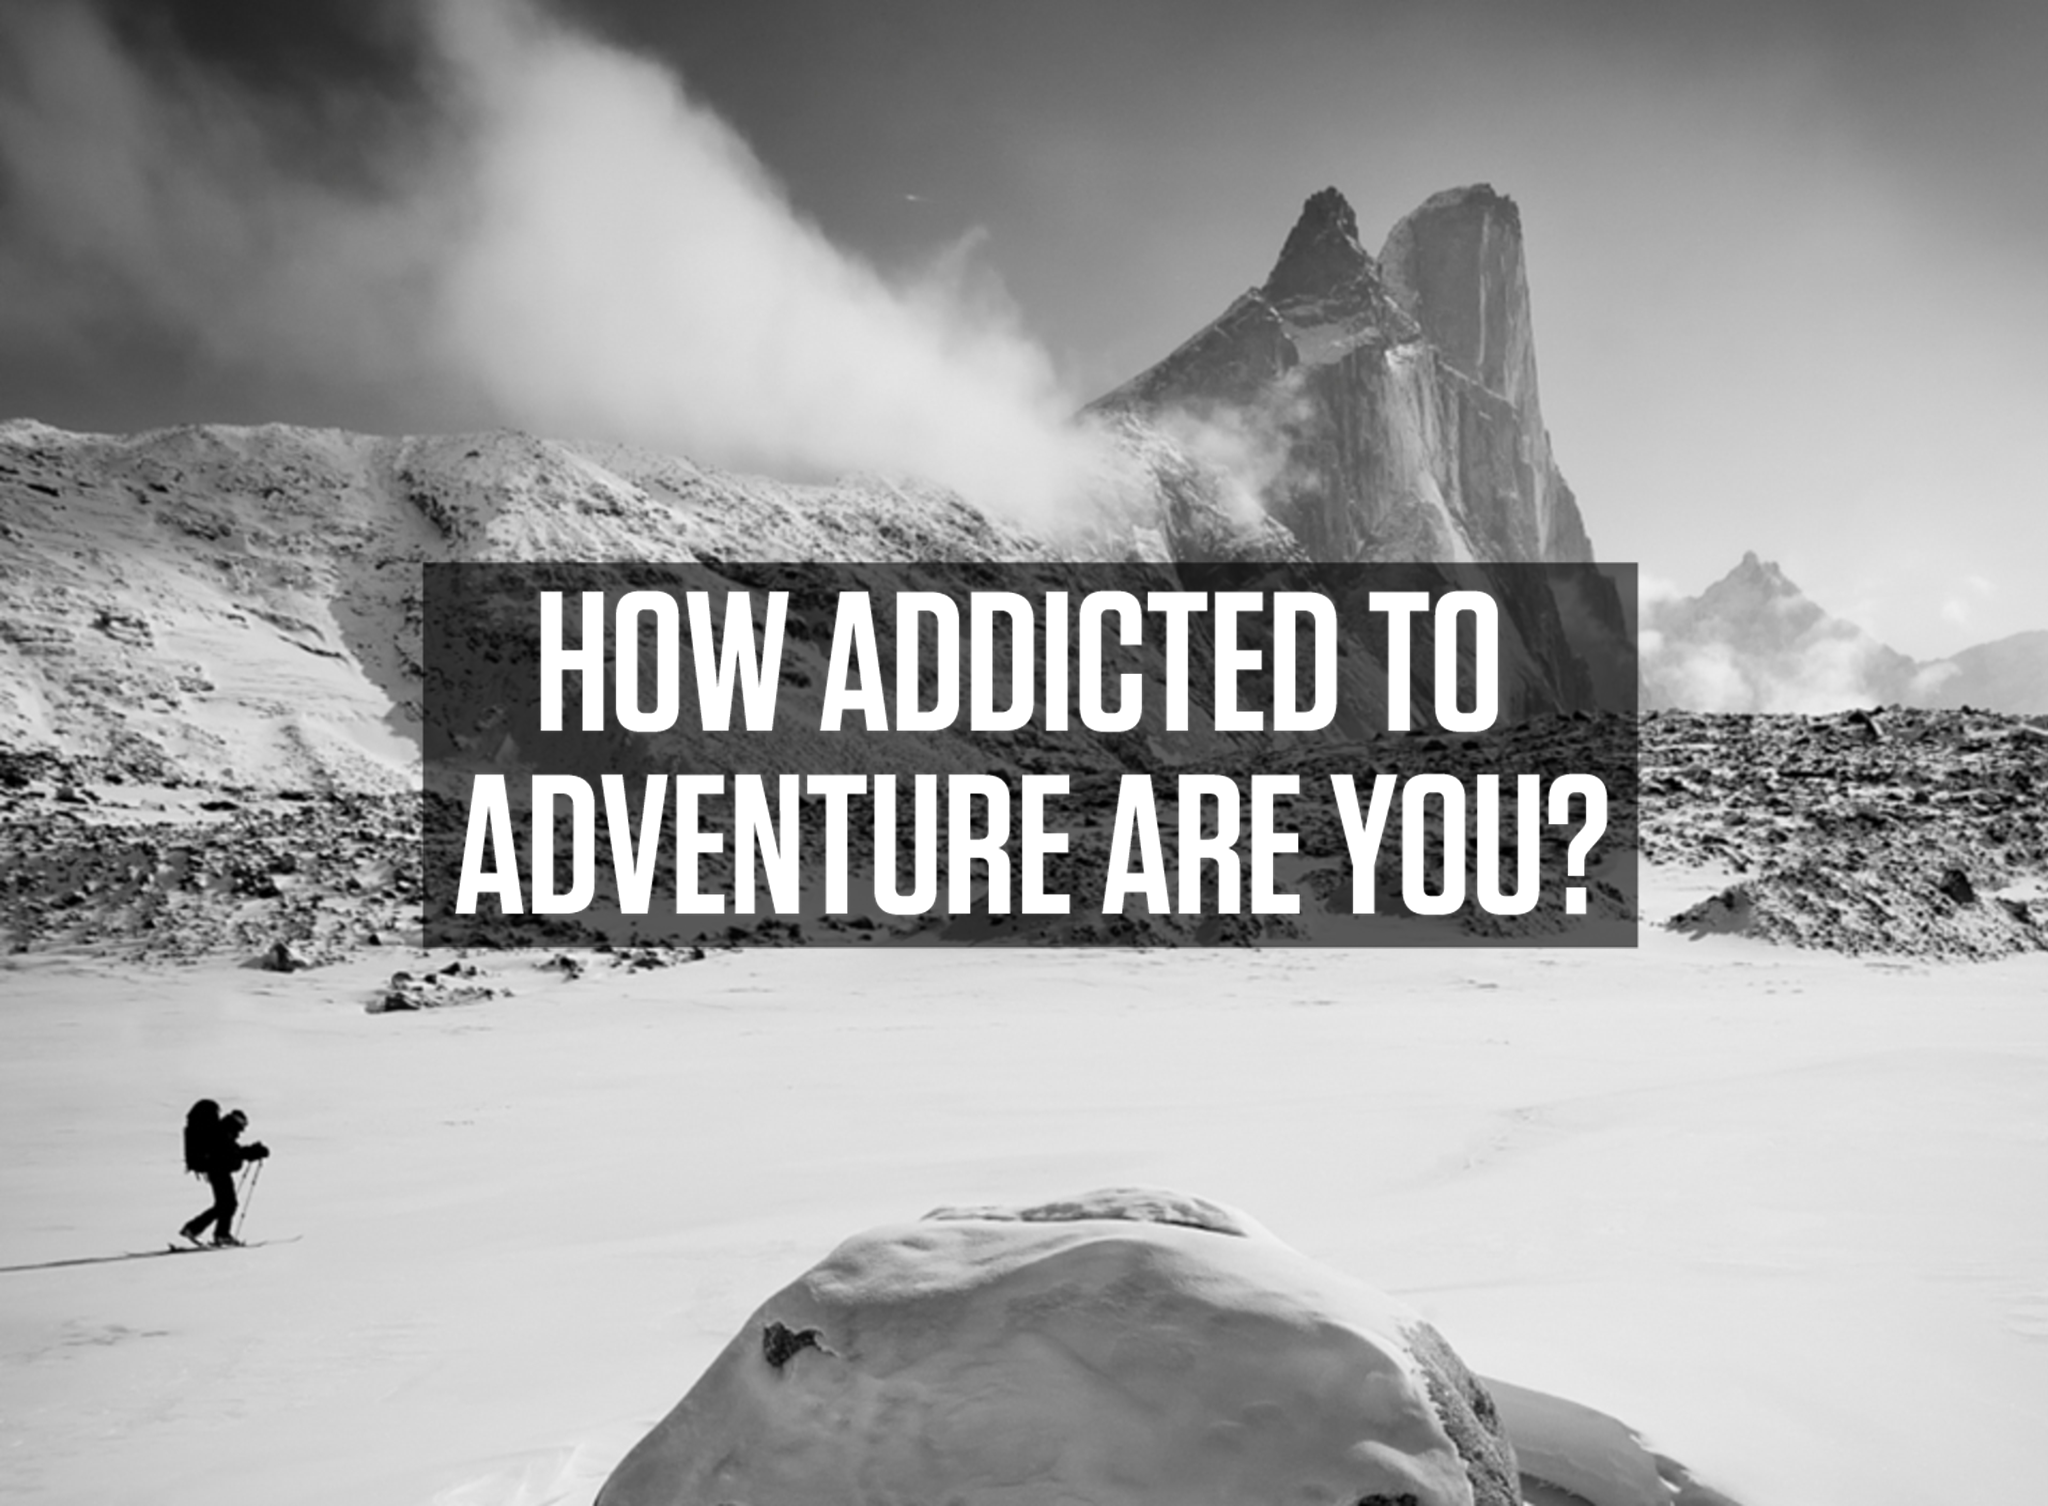 Addicted_quiz_banner.png